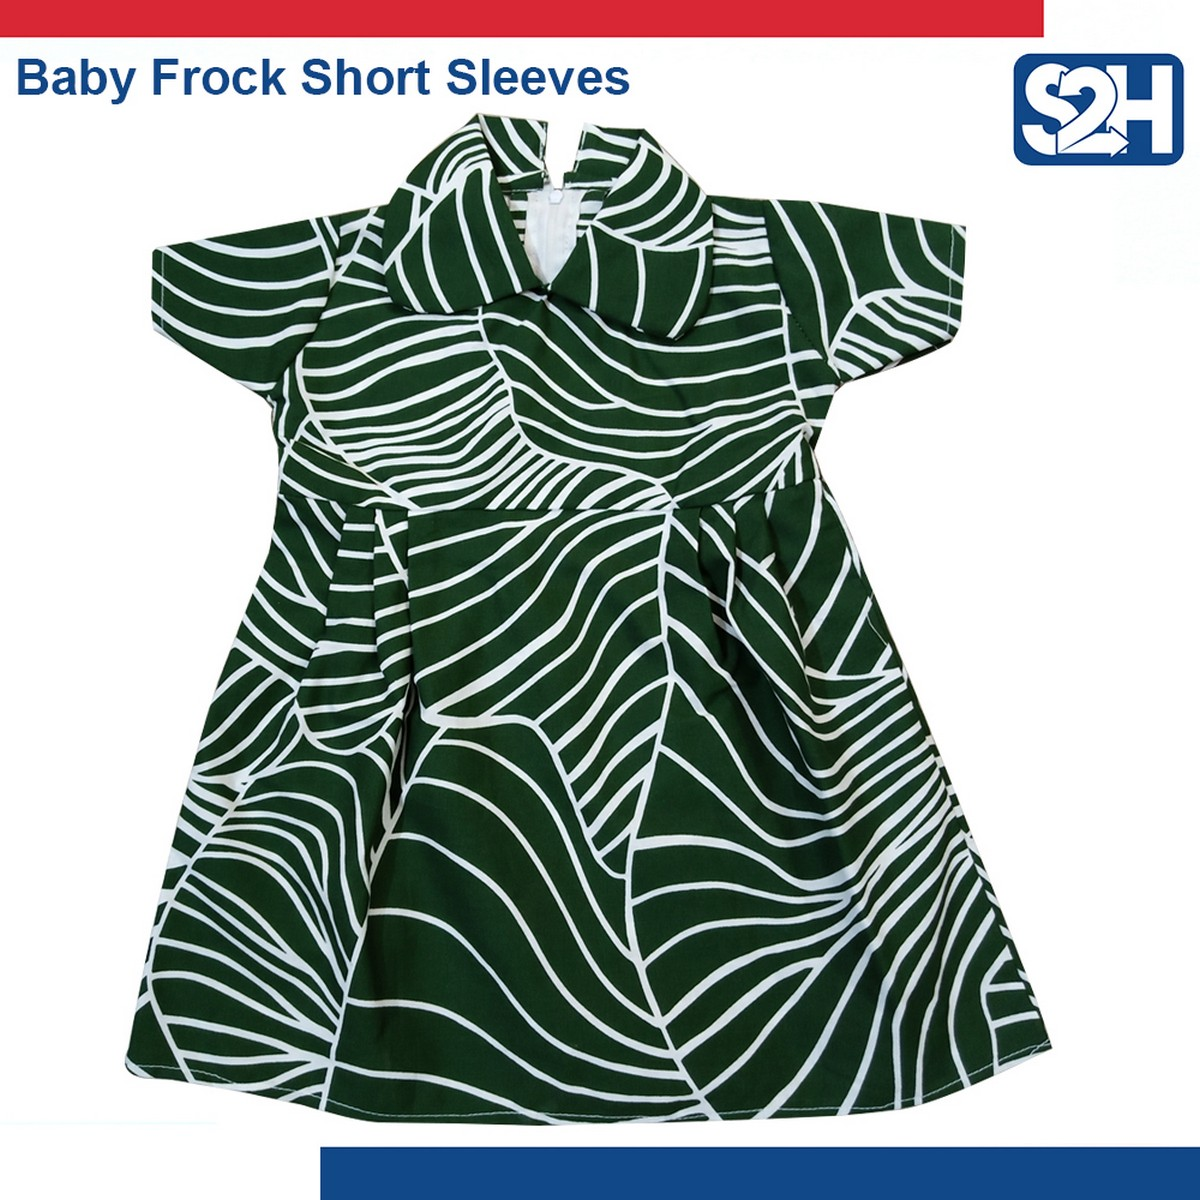 Printed Baby Frock Casual Wear Short Sleeves Collar Nec Frocks for Girls - 1 Pcs